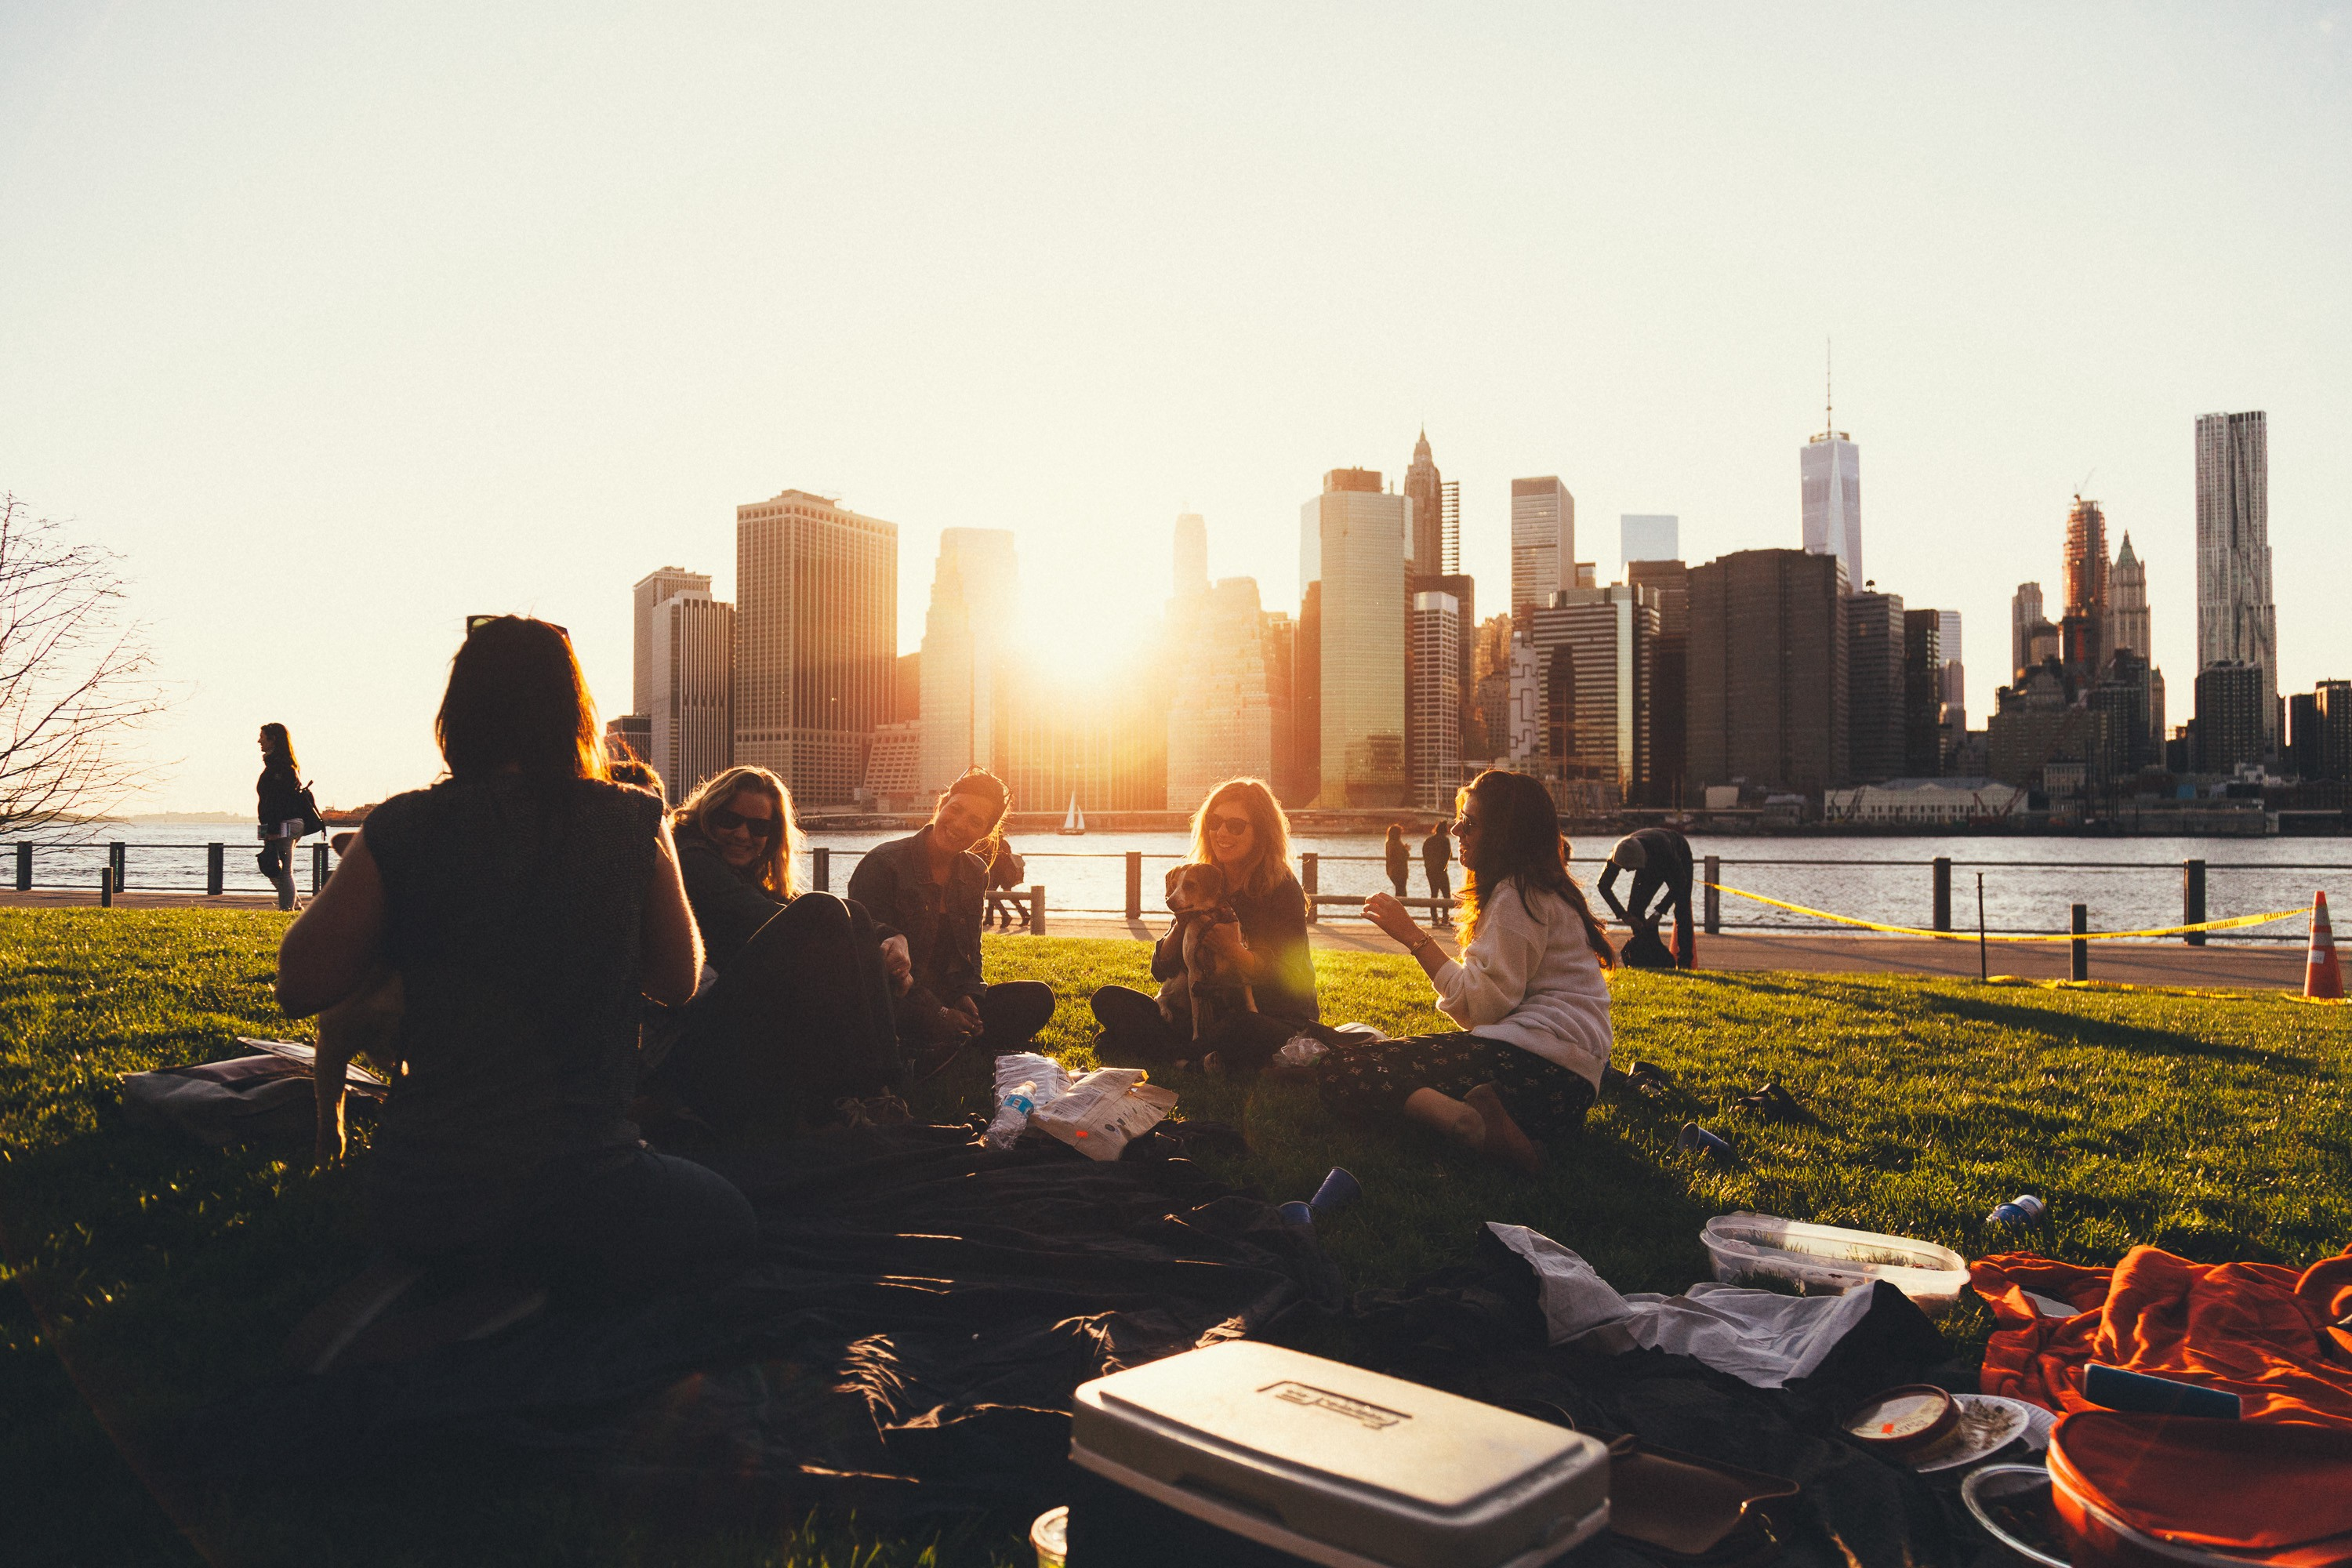 A group of mothers sitting together in a park. A city skyline and sunset are in the background.